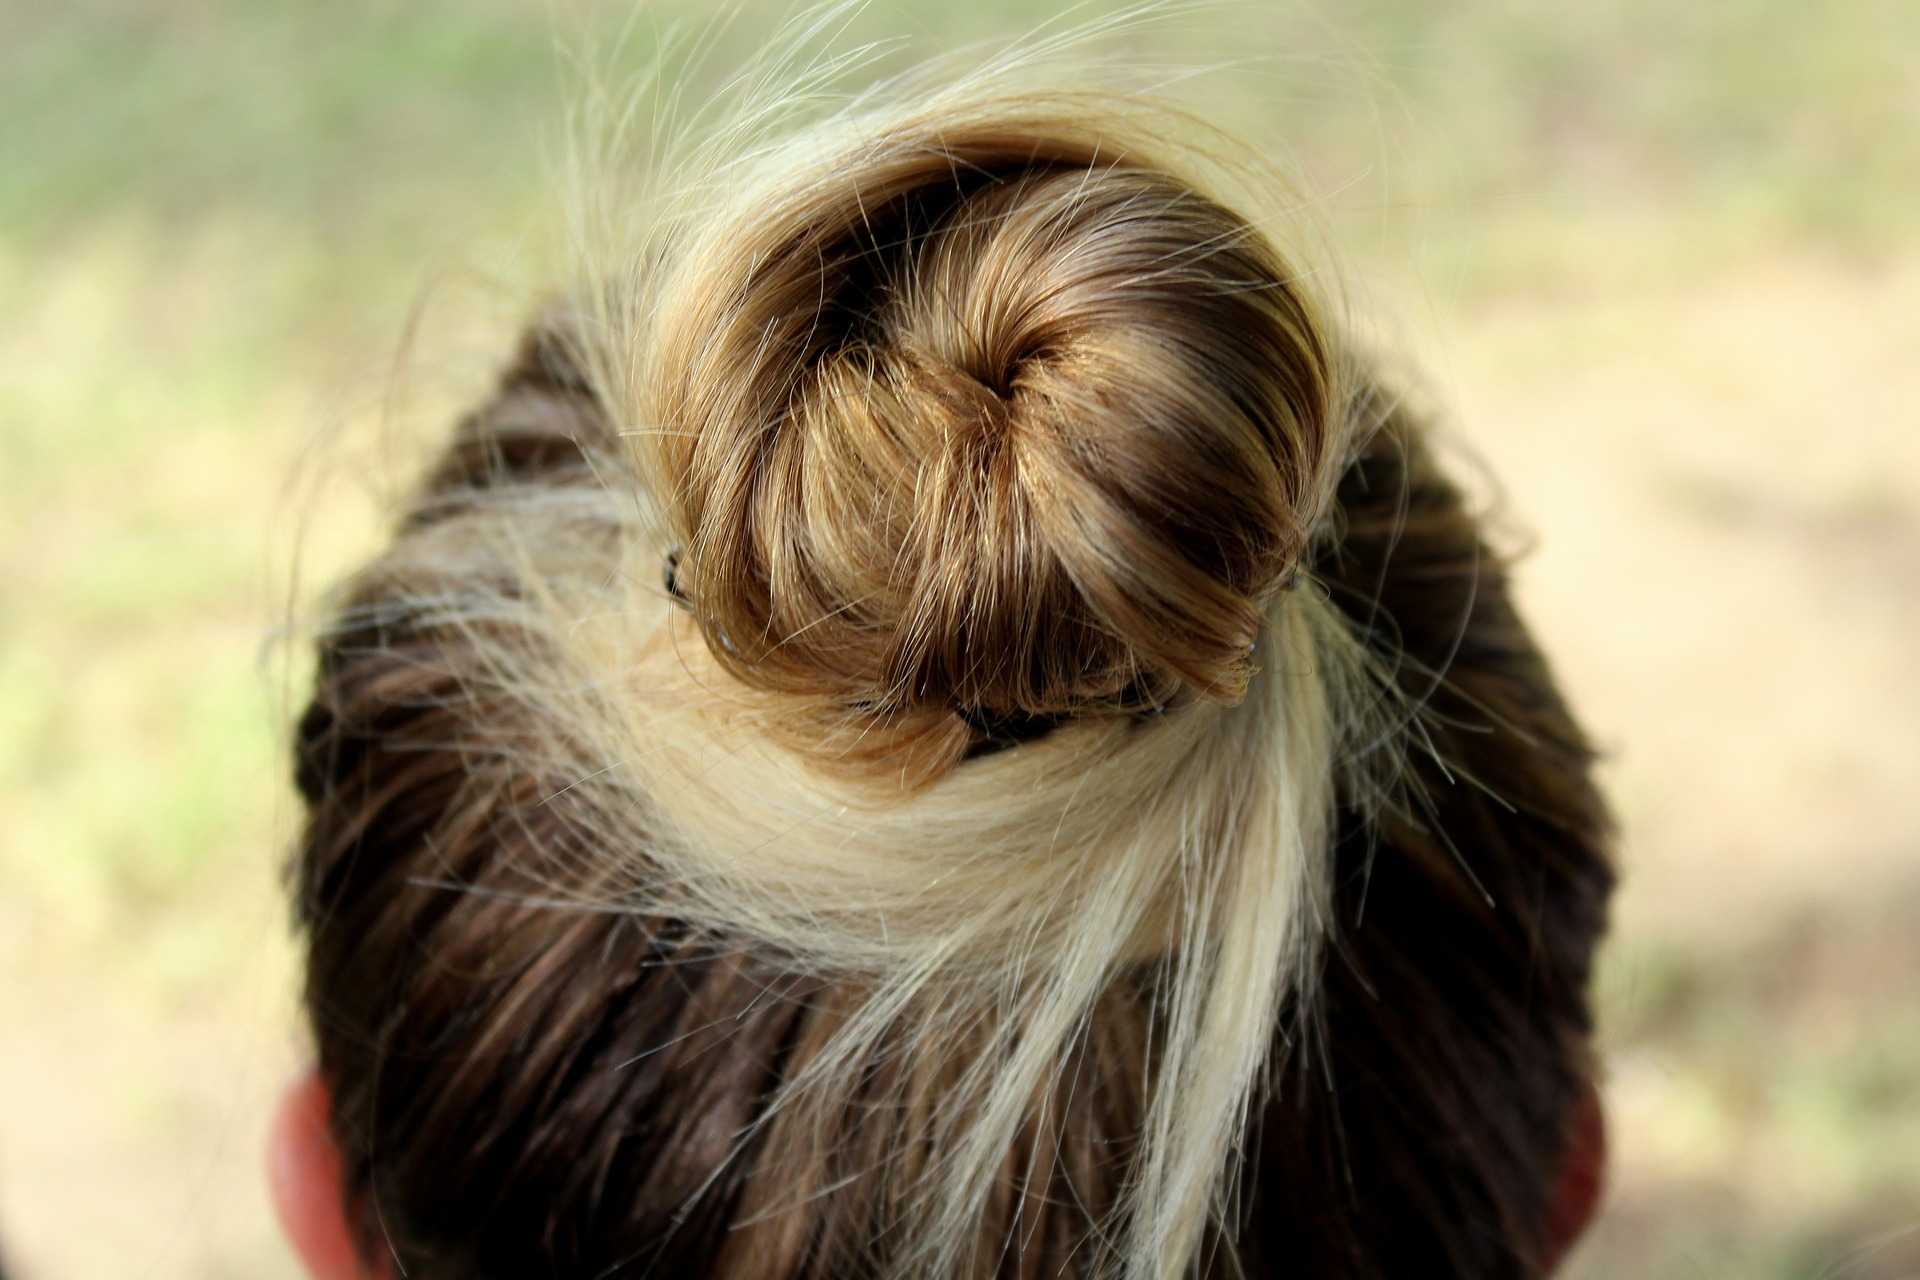 hairstyle-3693762_1920